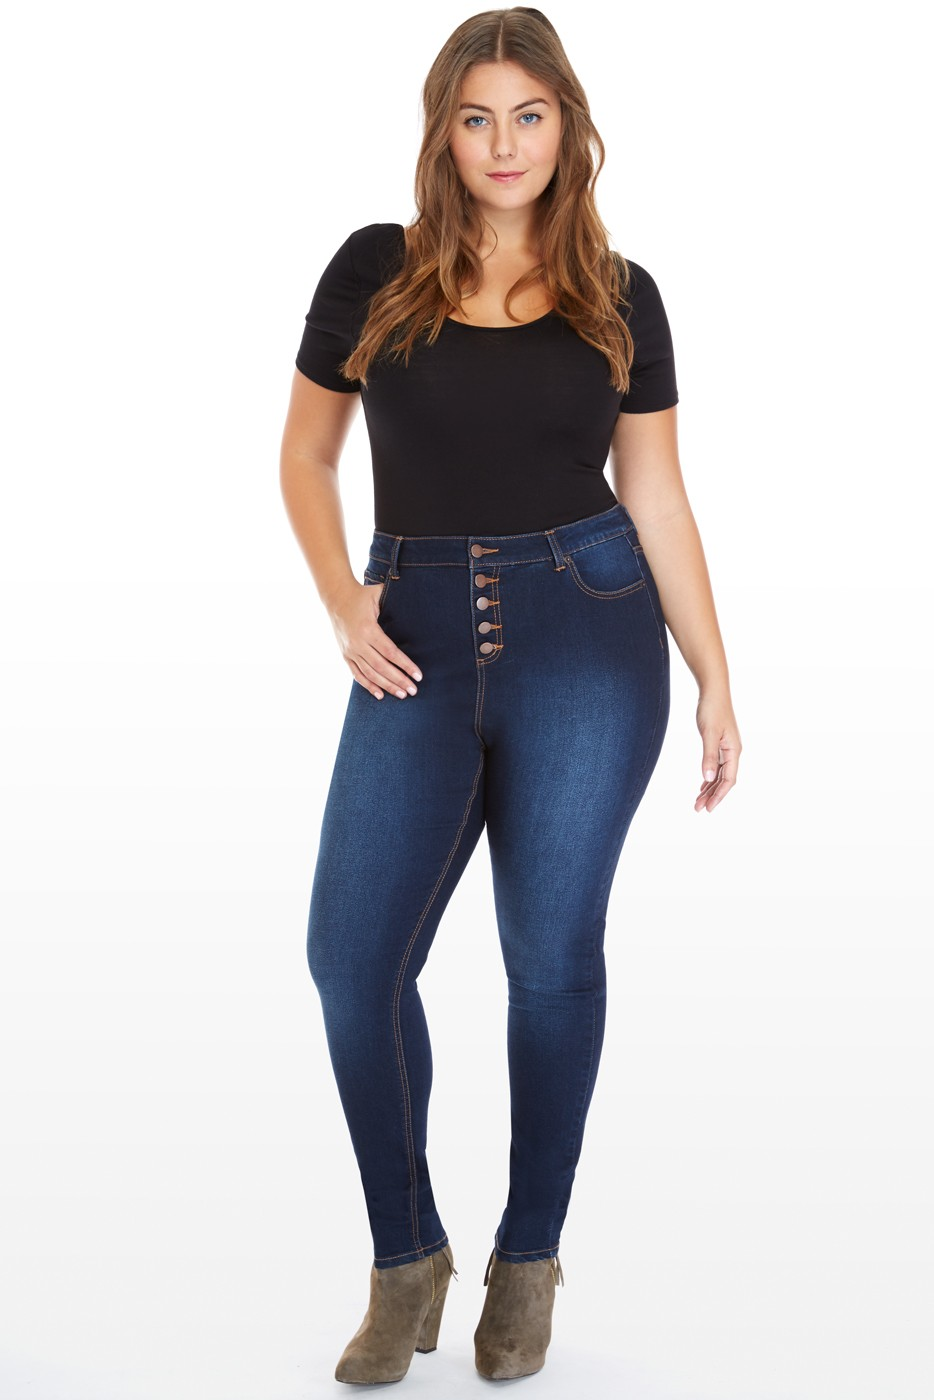 2015 Fall Plus Size Denim Shopping Guide